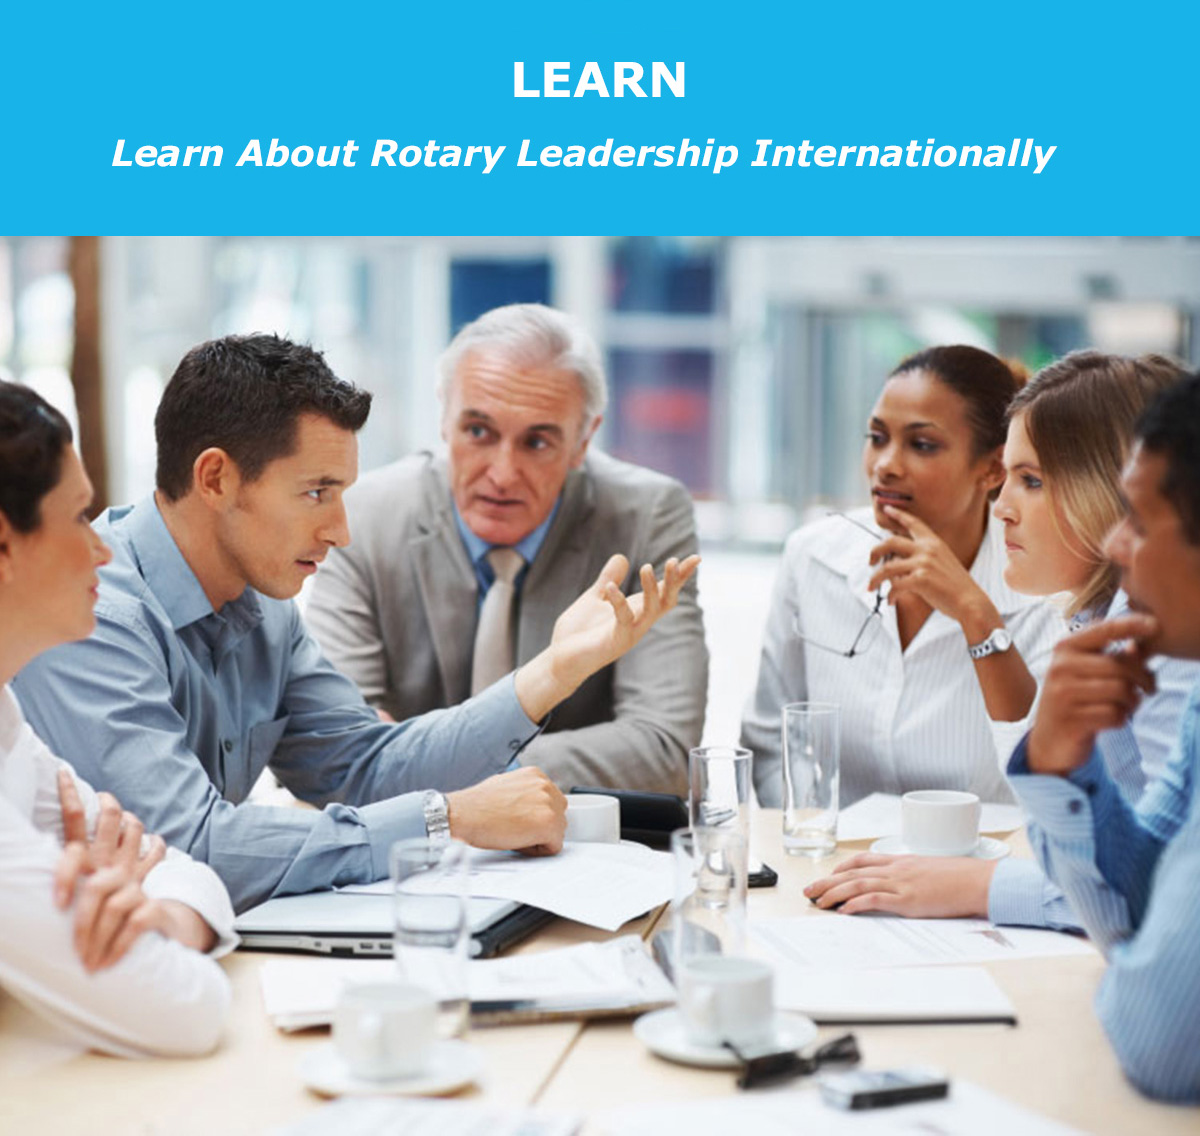 Learn About Rotary Leadership Internationally